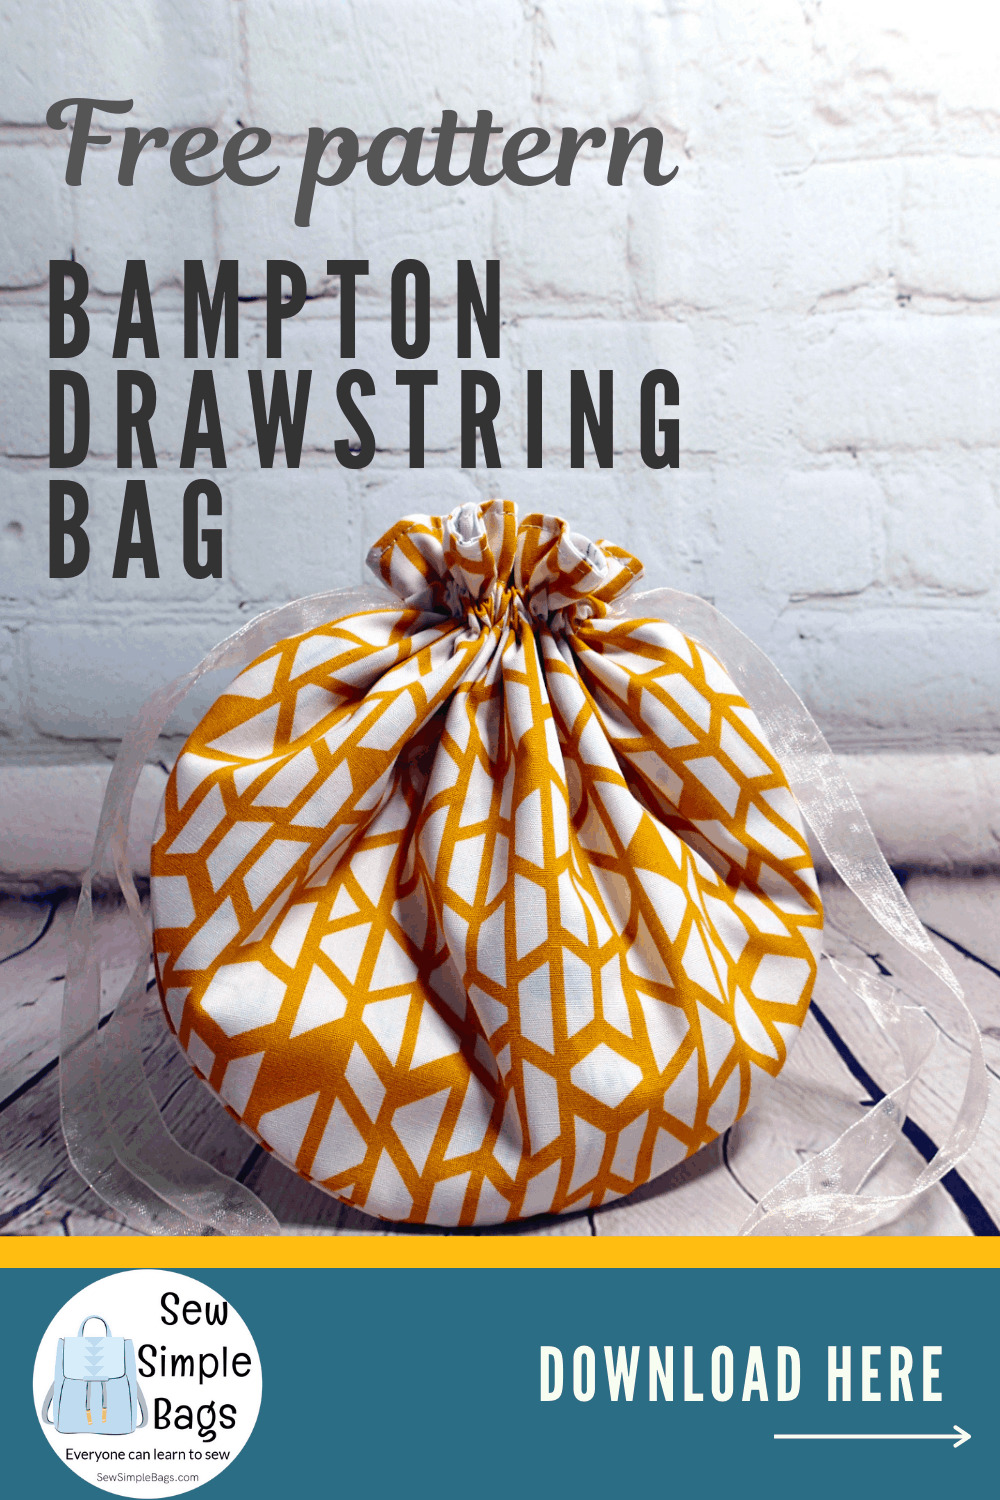 Easy drawstring bag sewing pattern for beginners with video tutorial in three sizes